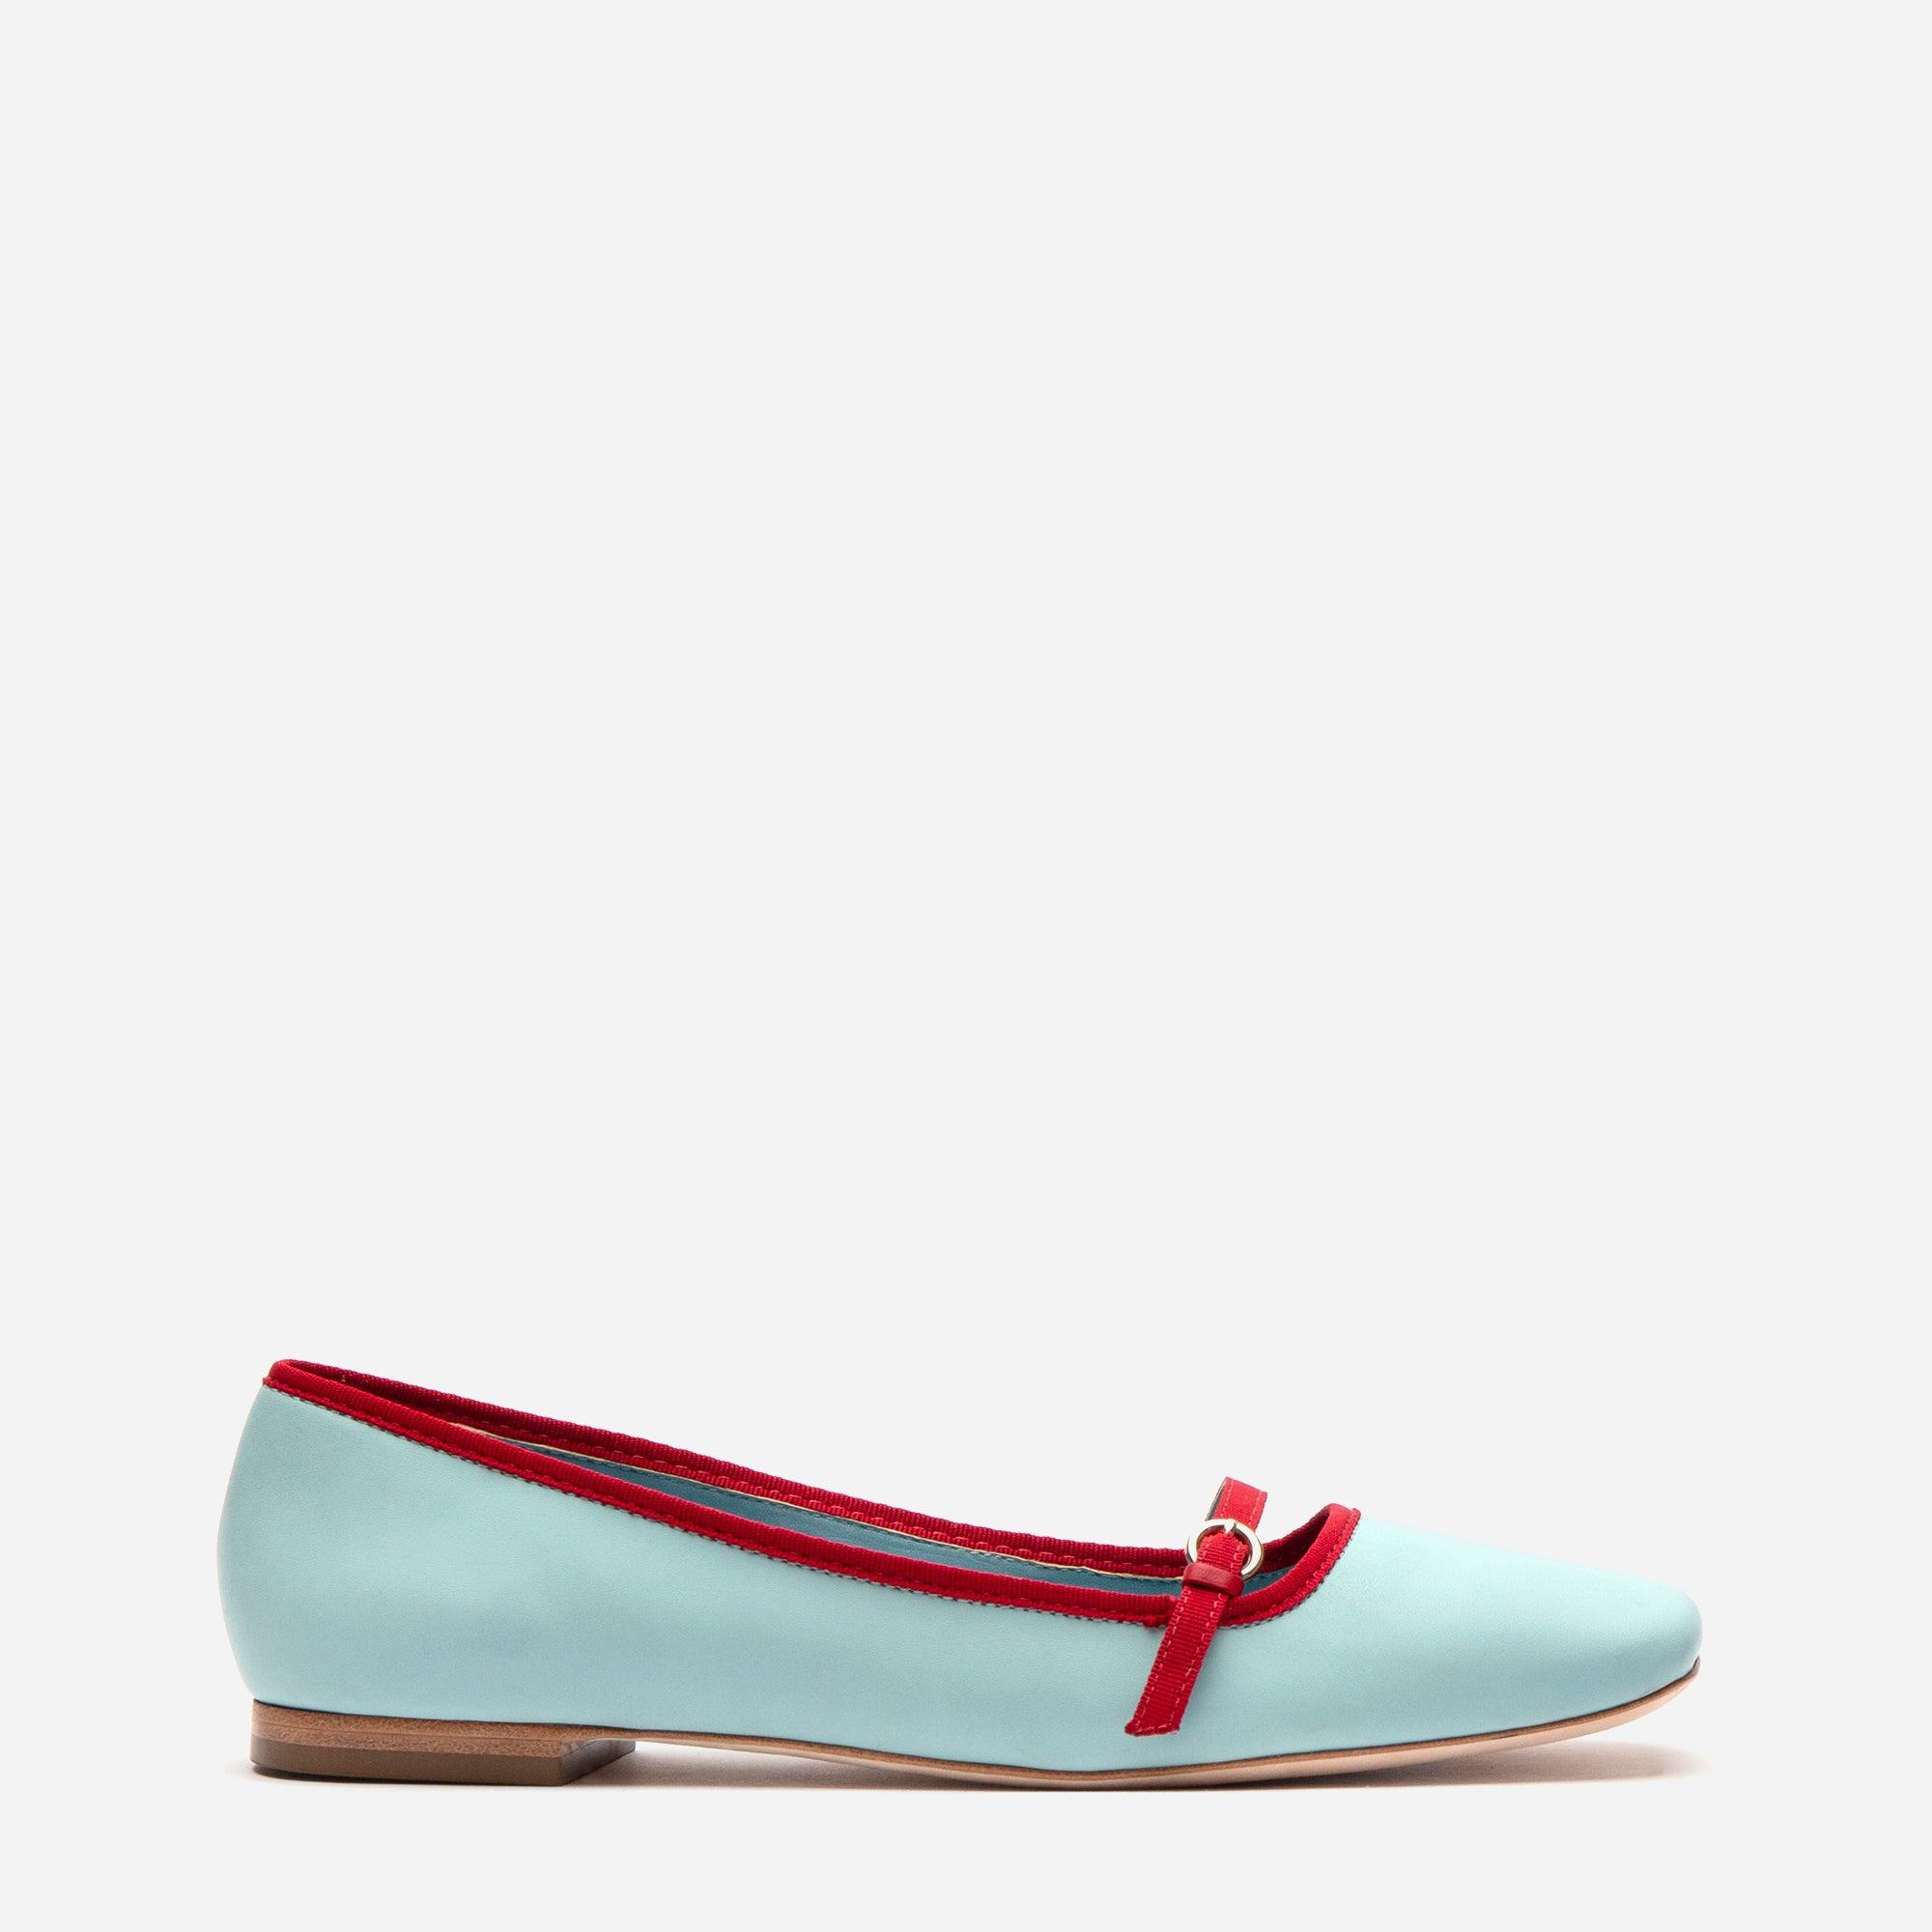 Josie Leather Flat Light Blue Red - Frances Valentine